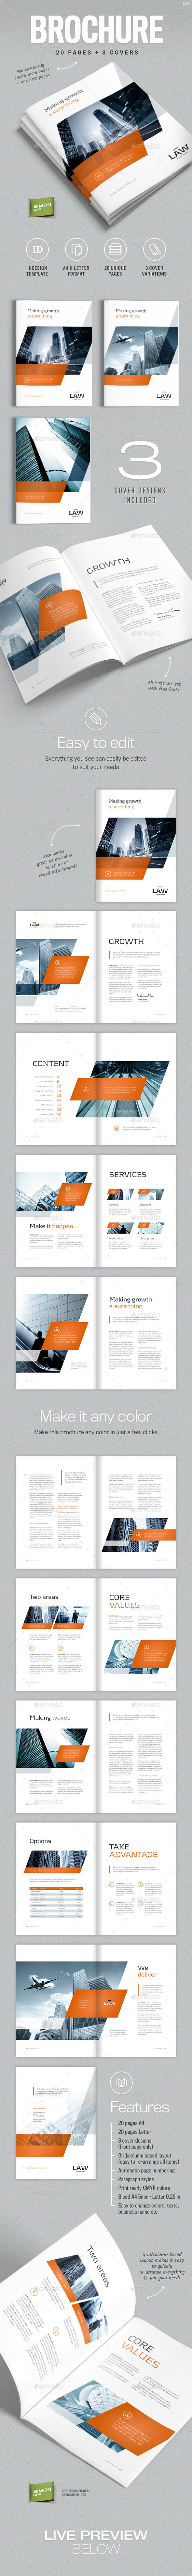 Brochure Template For Indesign A And Letter By Simoncpx - Indesign brochure template